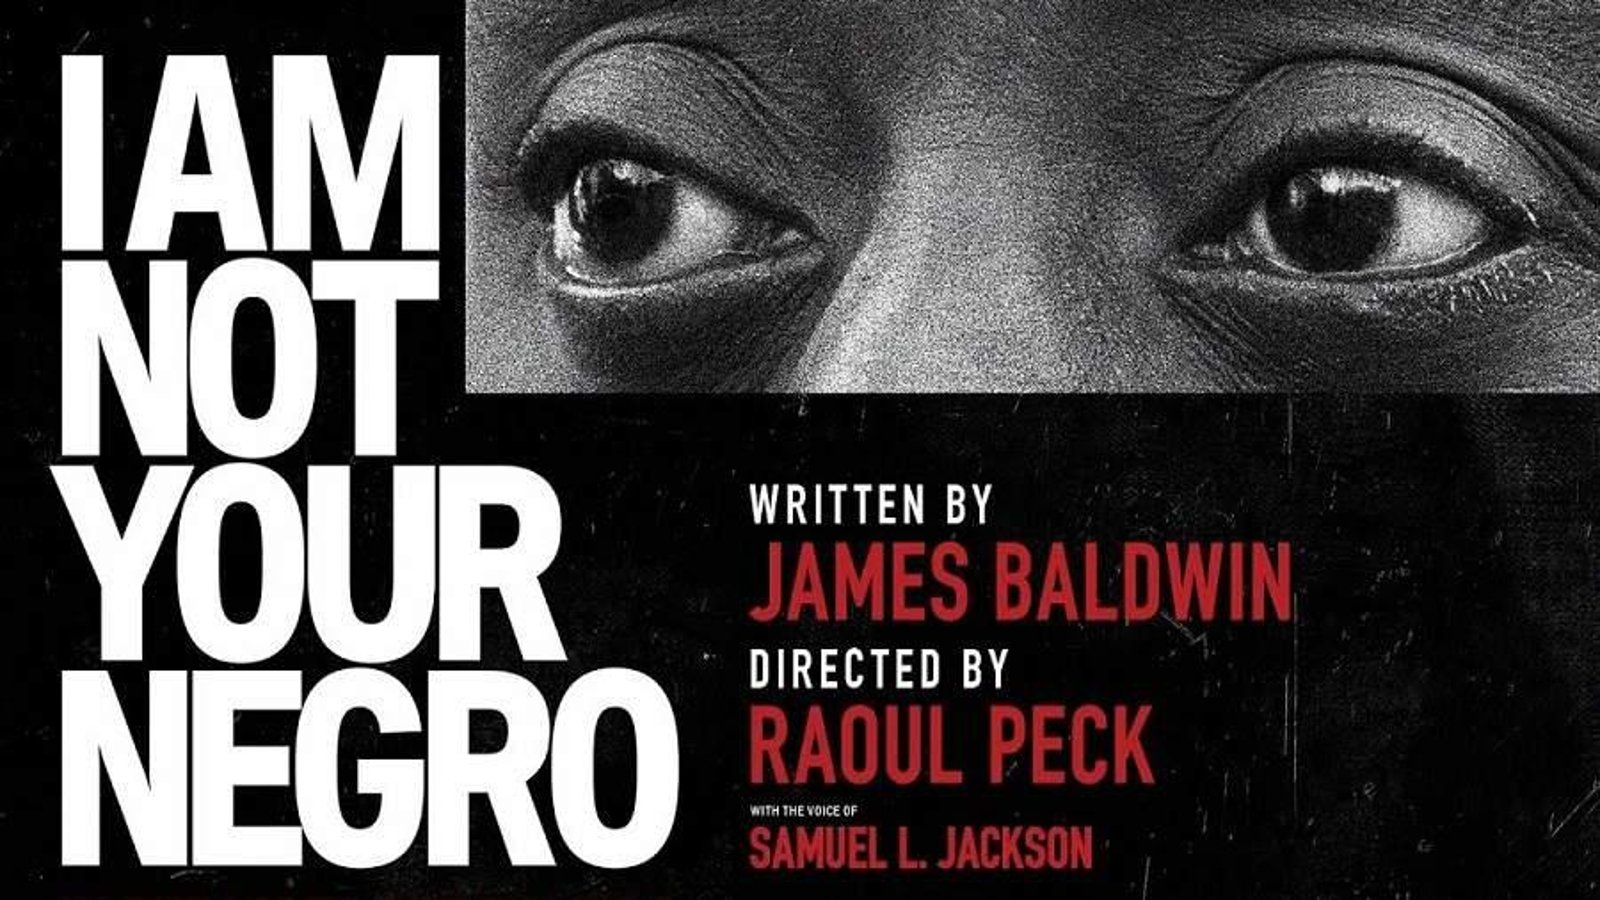 I am not your negro text with image of eyes